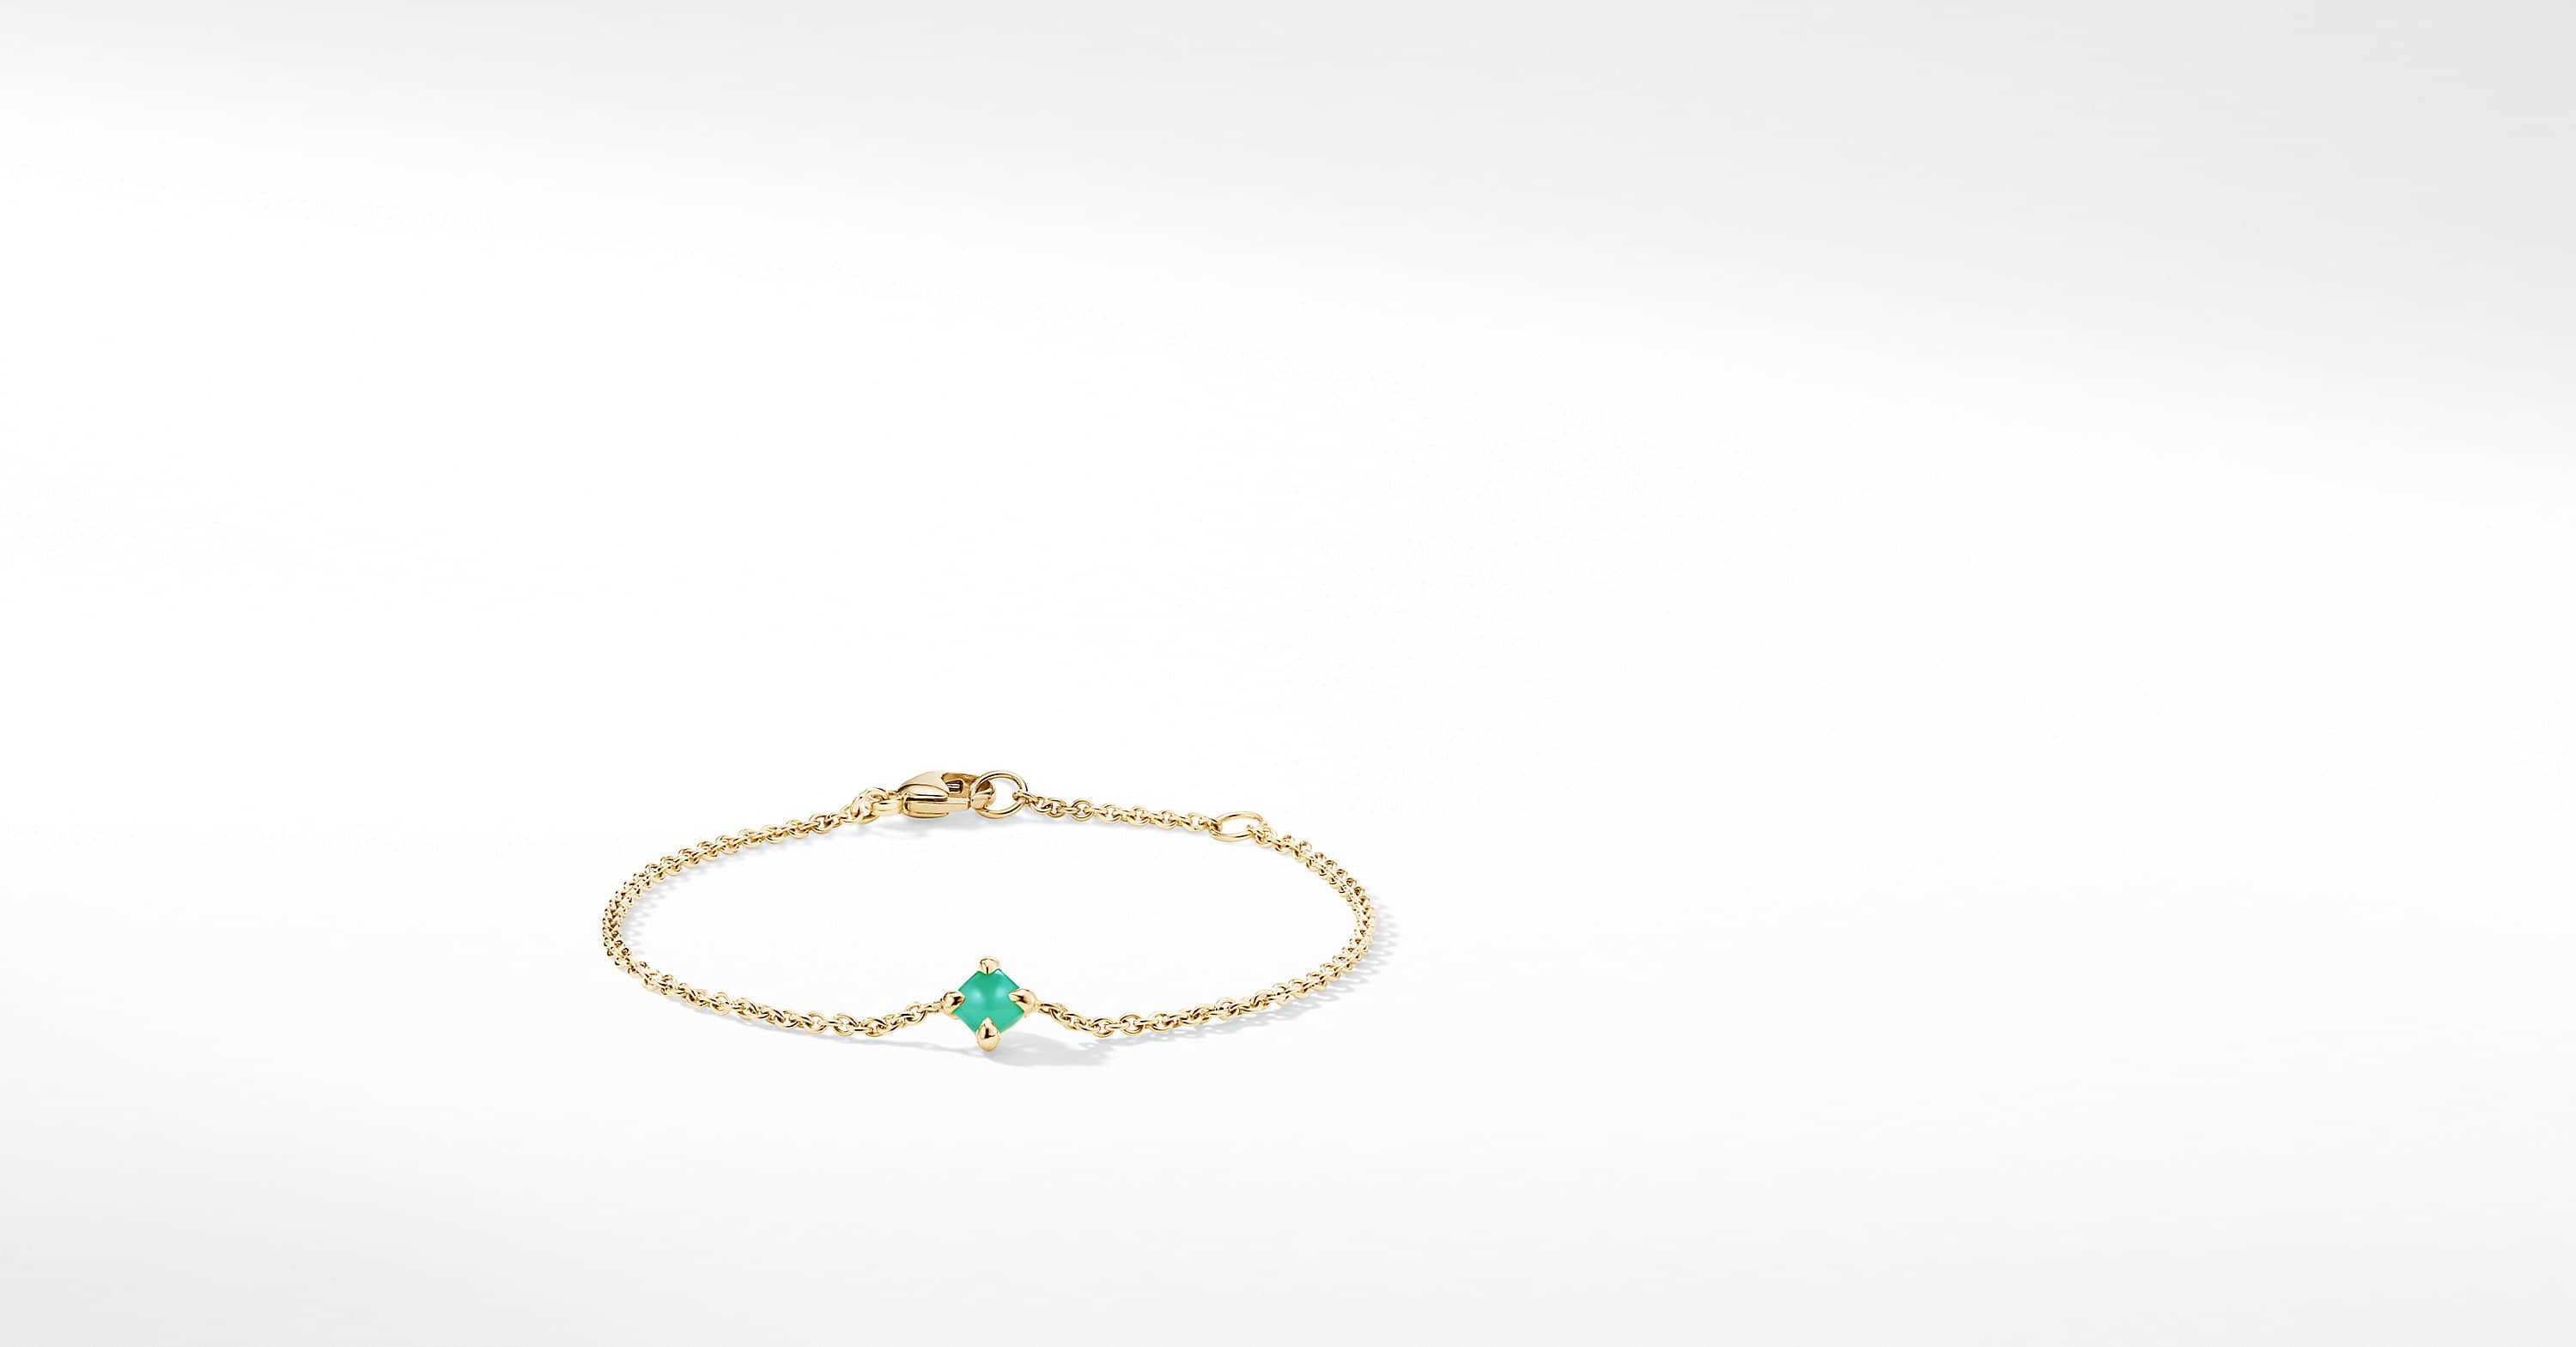 Chatelaine Kids Bracelet in 18K Gold, 4mm